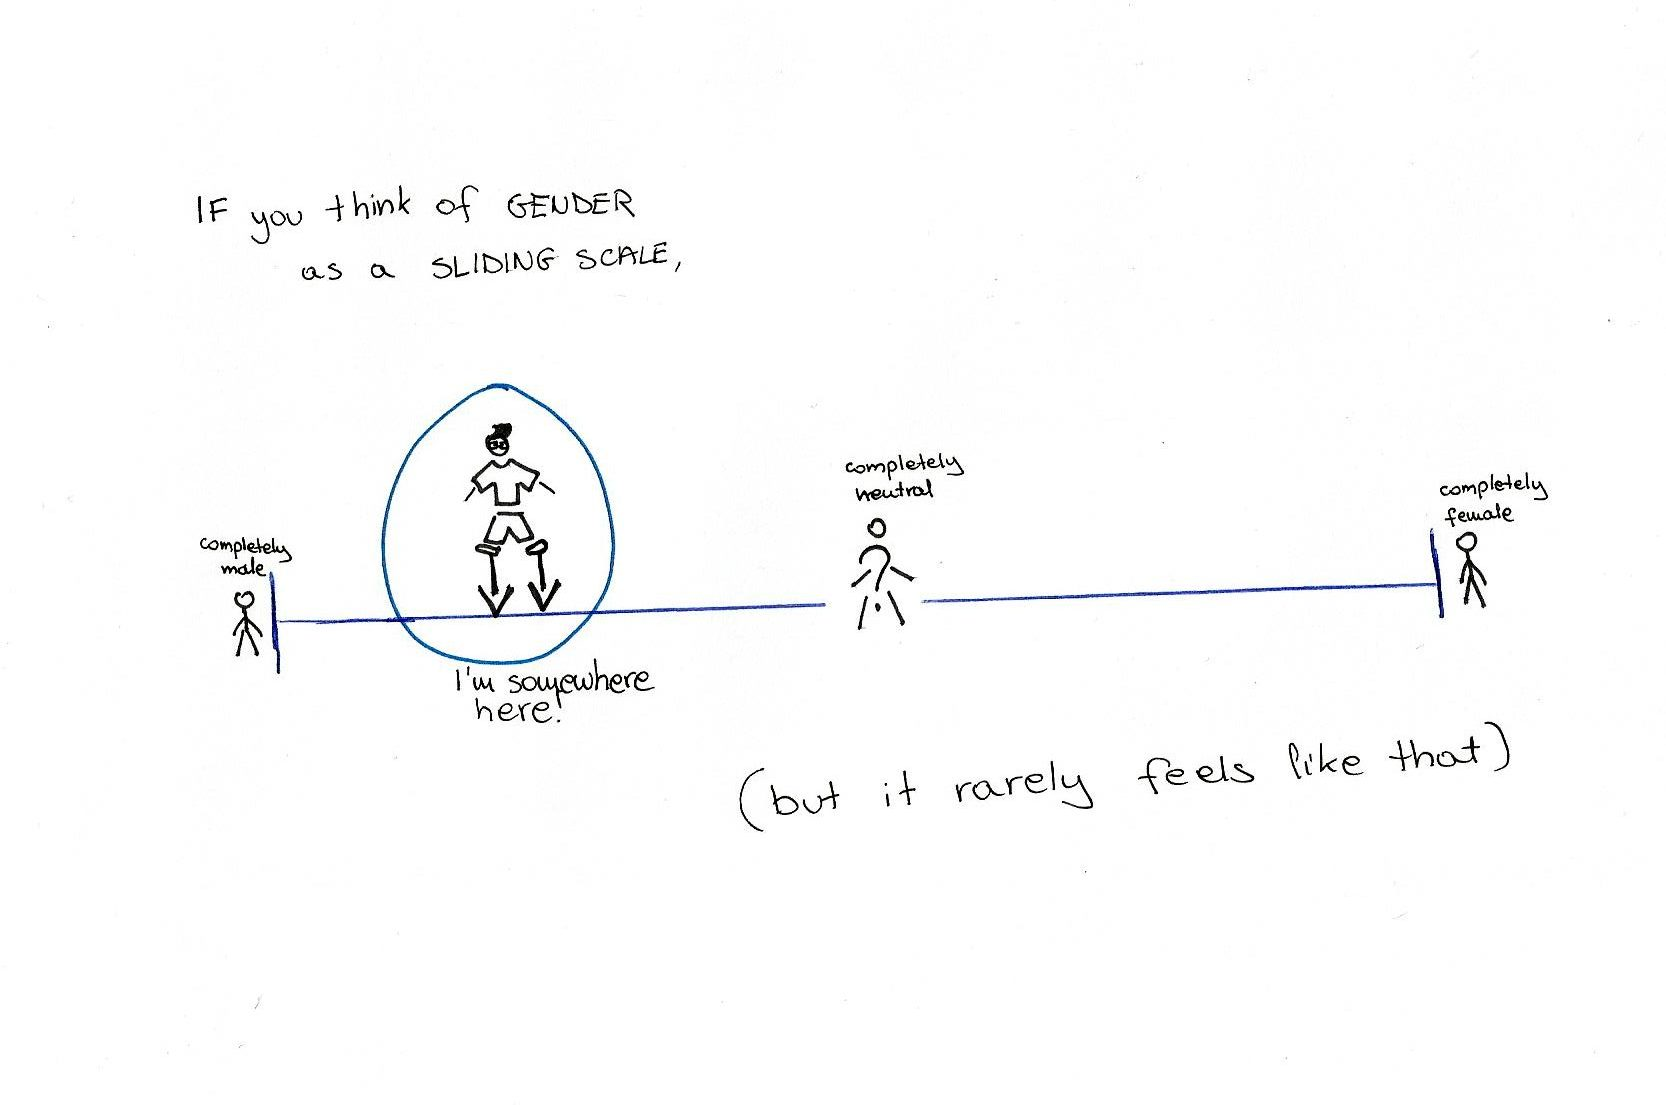 """If you think of gender as a sliding scale."" below that, there is a line. At the far left is a stick figure captioned ""completely male"", at the far right another one captioned ""completely female"". In the centre sits a stick figure whose torso is a question mark, captioned ""completely neutral"". Between male and neutral there is a figure with clothes, short hair and glasses, with arrows pointing at the middle area of the line between male and neutral. The caption reads ""I'm somewhere here!"""